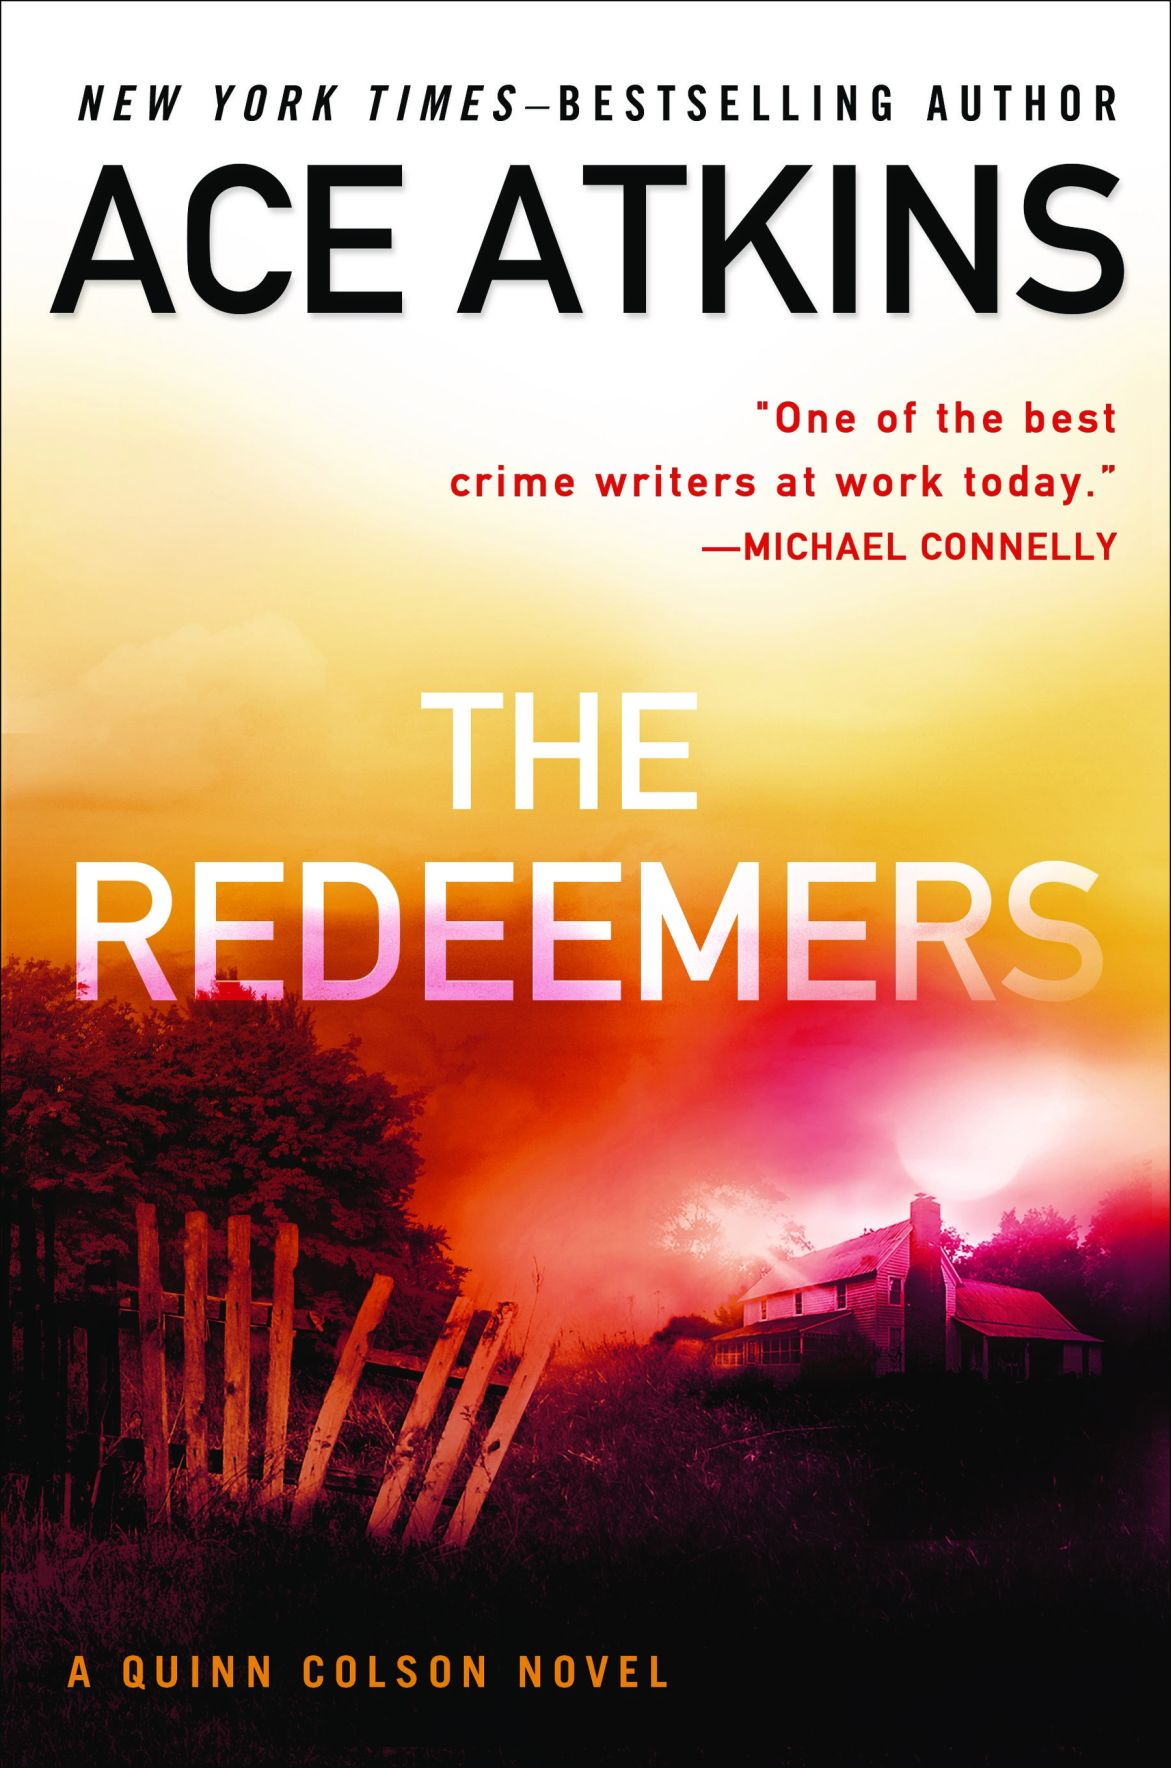 'The Redeemers' showcases author's storytelling skills